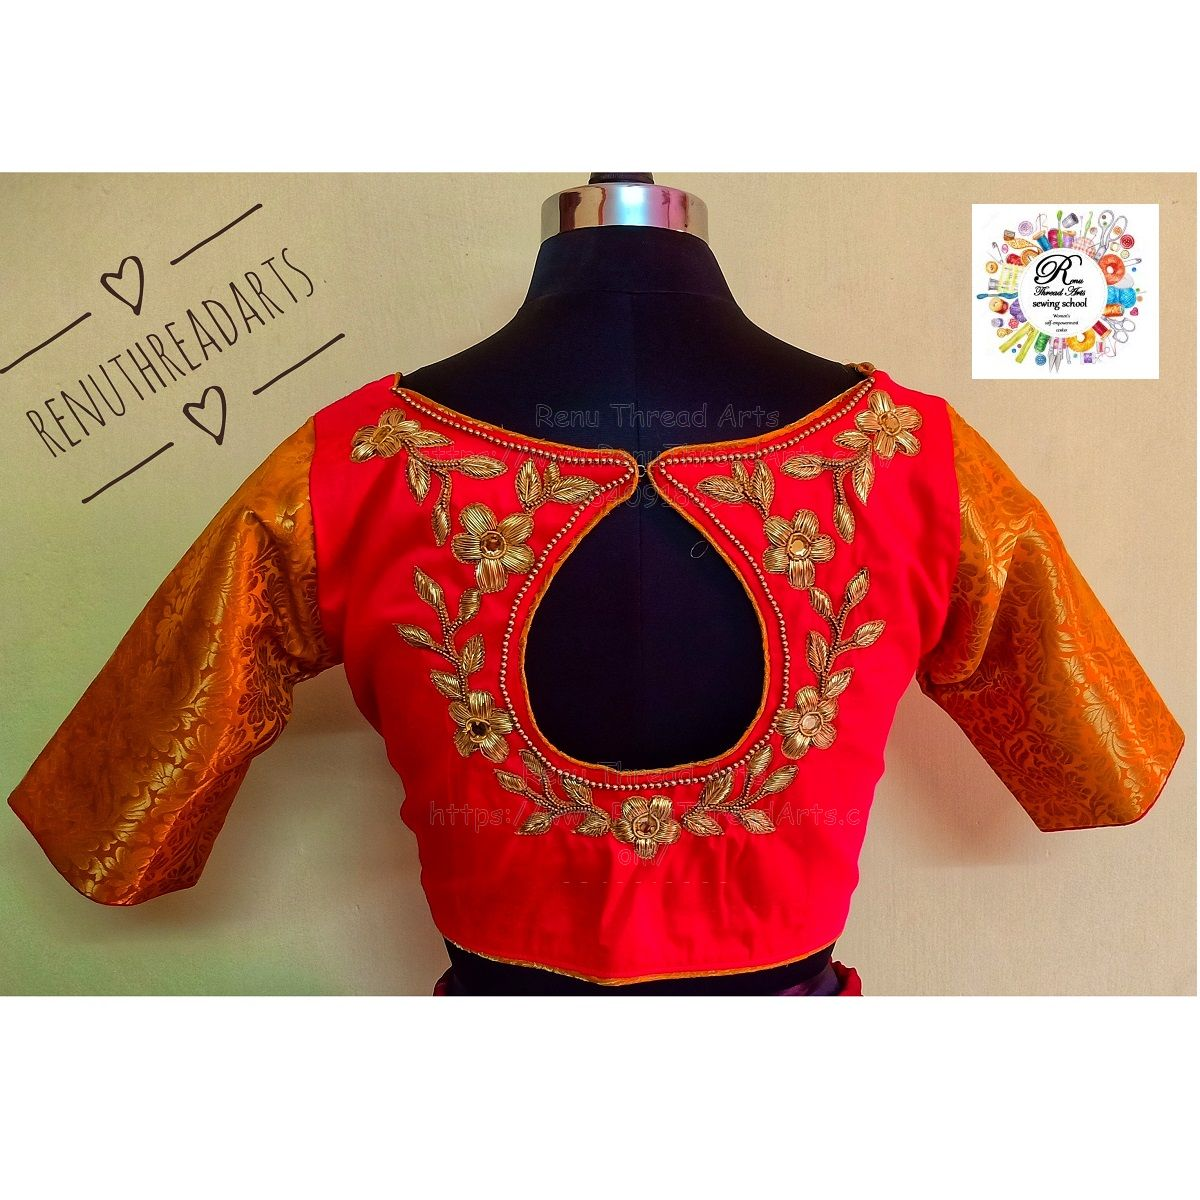 Fashion Designing And Aari Embroidery Class At Chennai